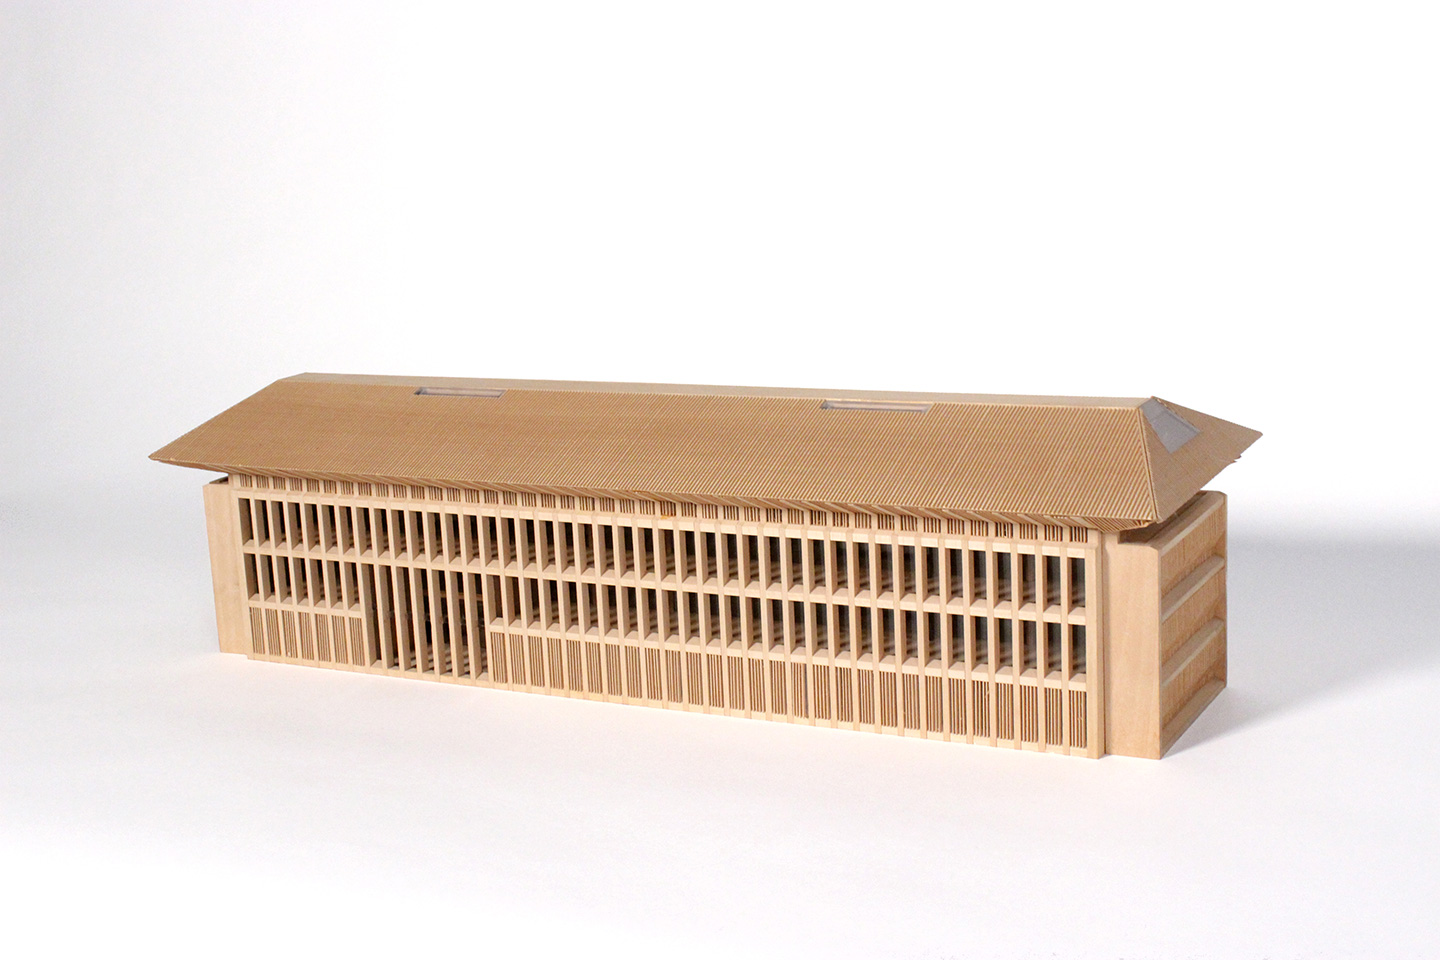 Model of the U.S. Embassy in Sri Lanka by architect Victor Lundy.